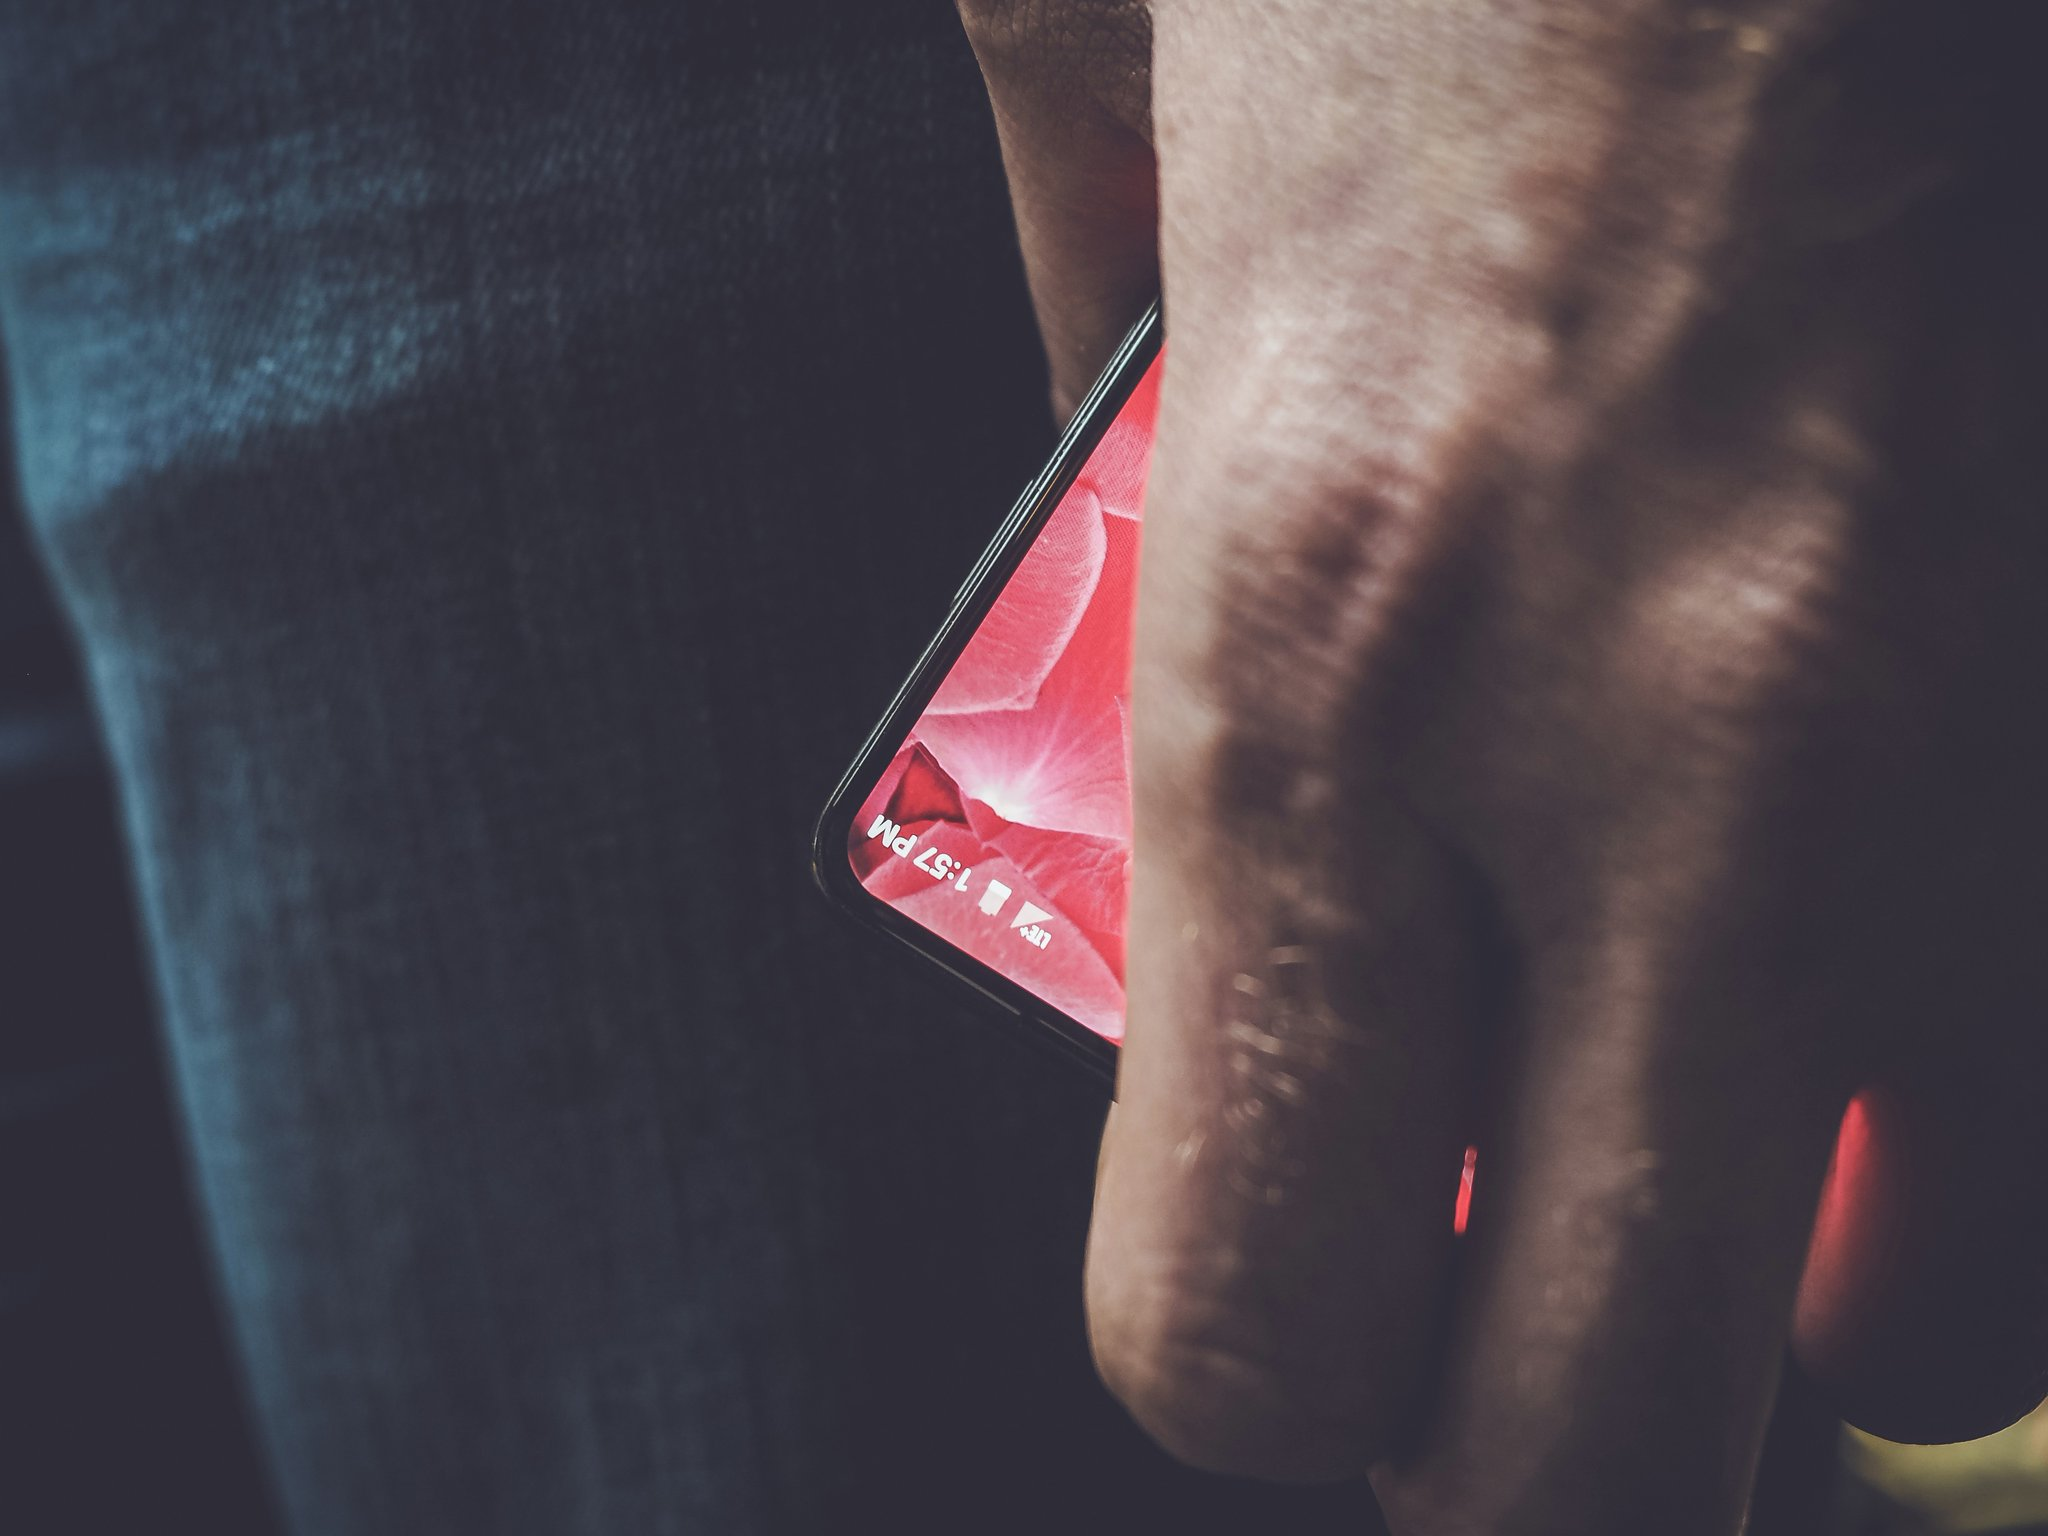 Andy Rubin's Essential Smartphone's Specs Just Leaked in a New Benchmark